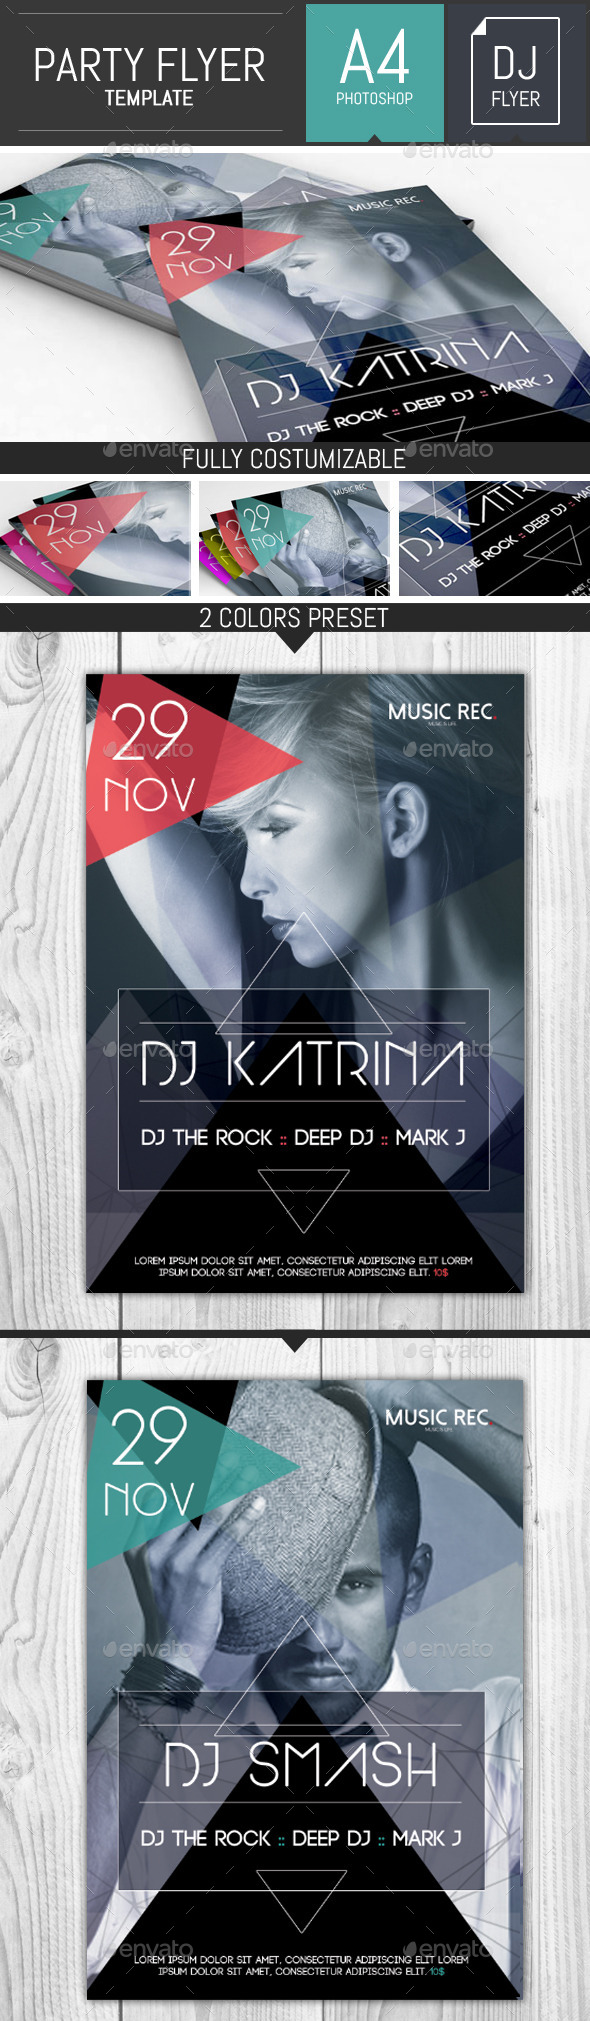 Abstract Party Dj Flyer Template - Clubs & Parties Events